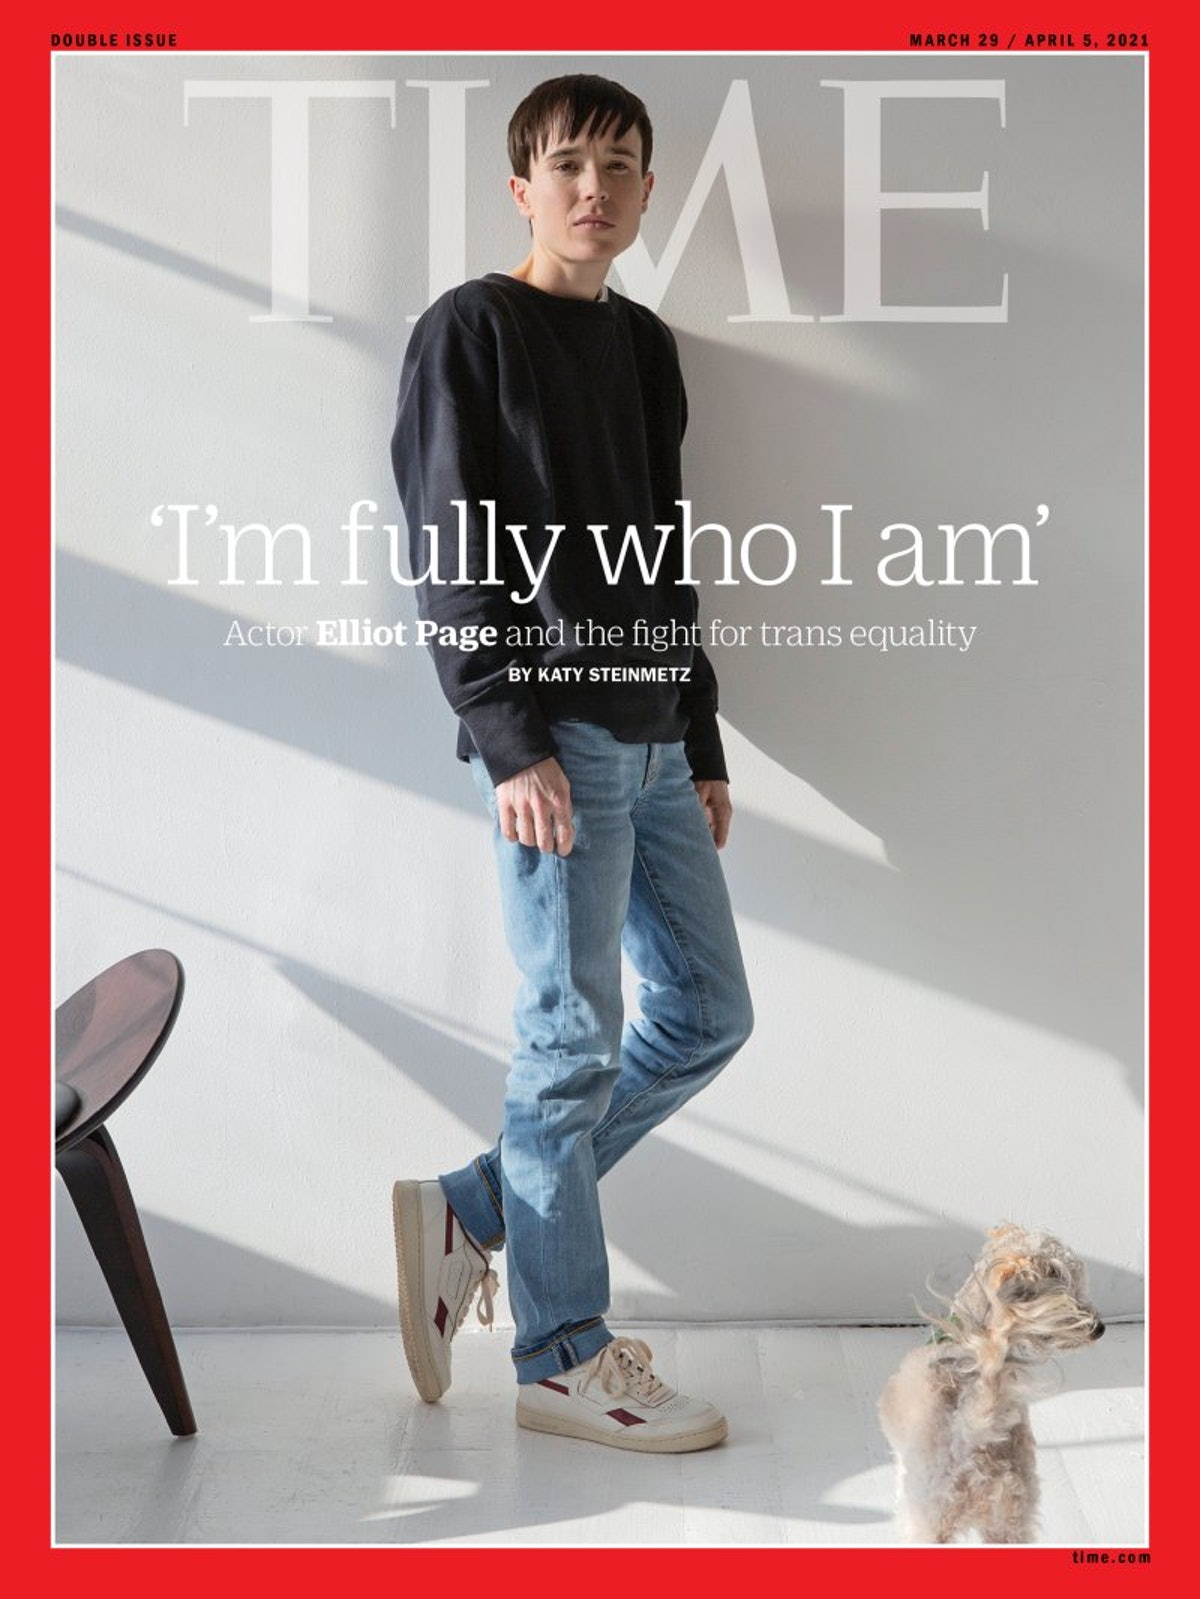 Photo: Wynne Neilly for TIME